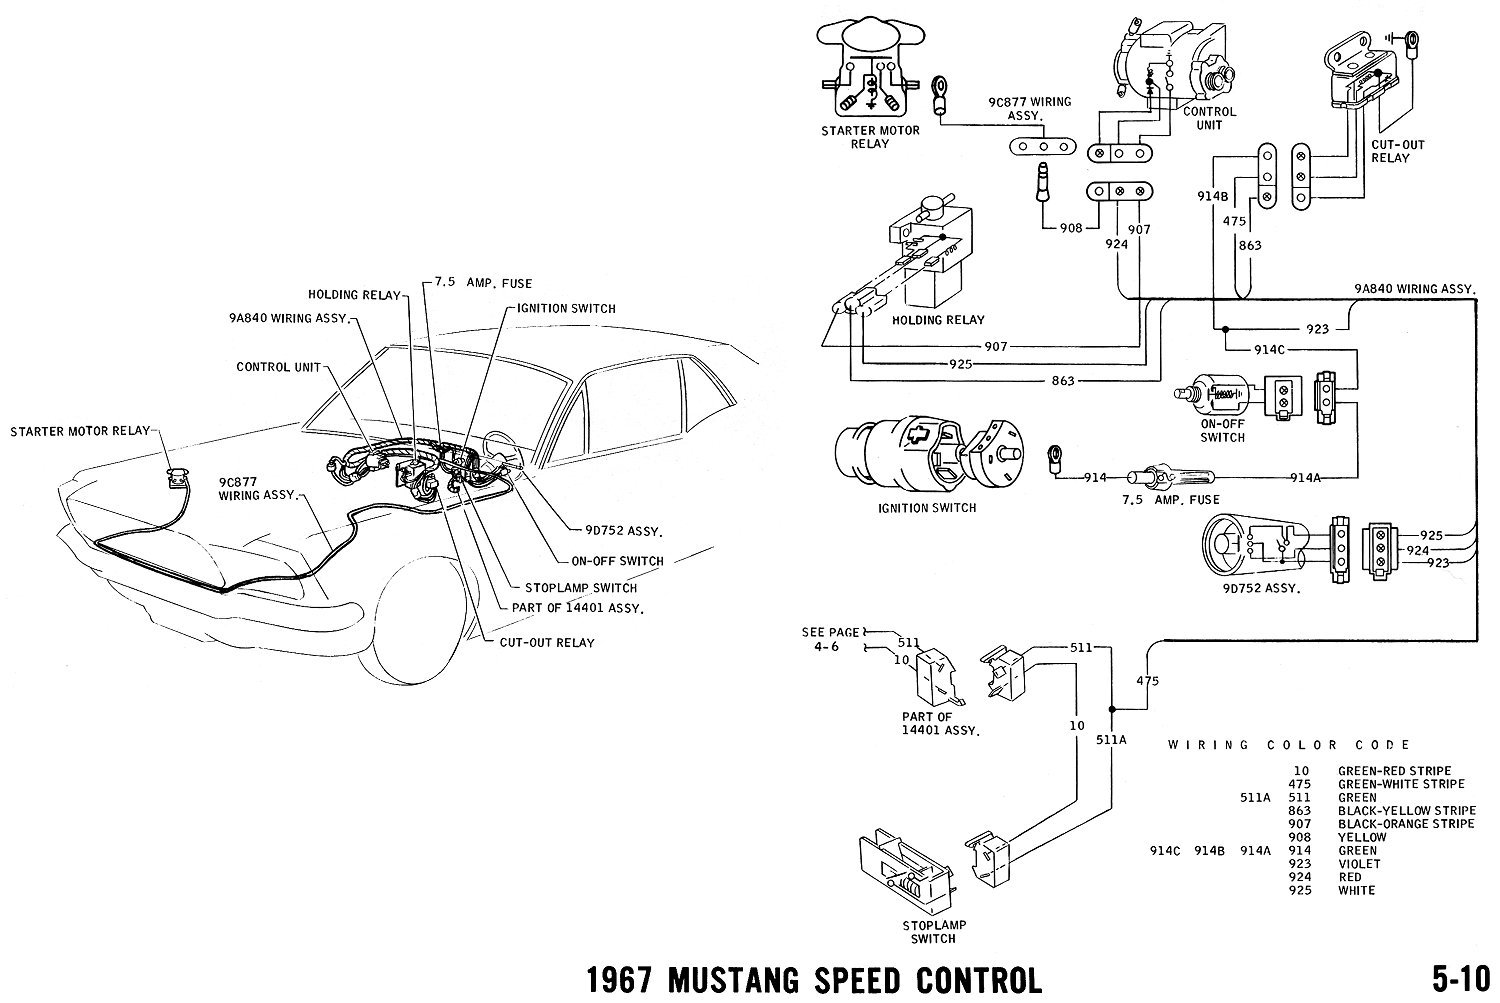 67speed 1967 mustang wiring and vacuum diagrams average joe restoration 68 mustang alternator wiring diagram at nearapp.co